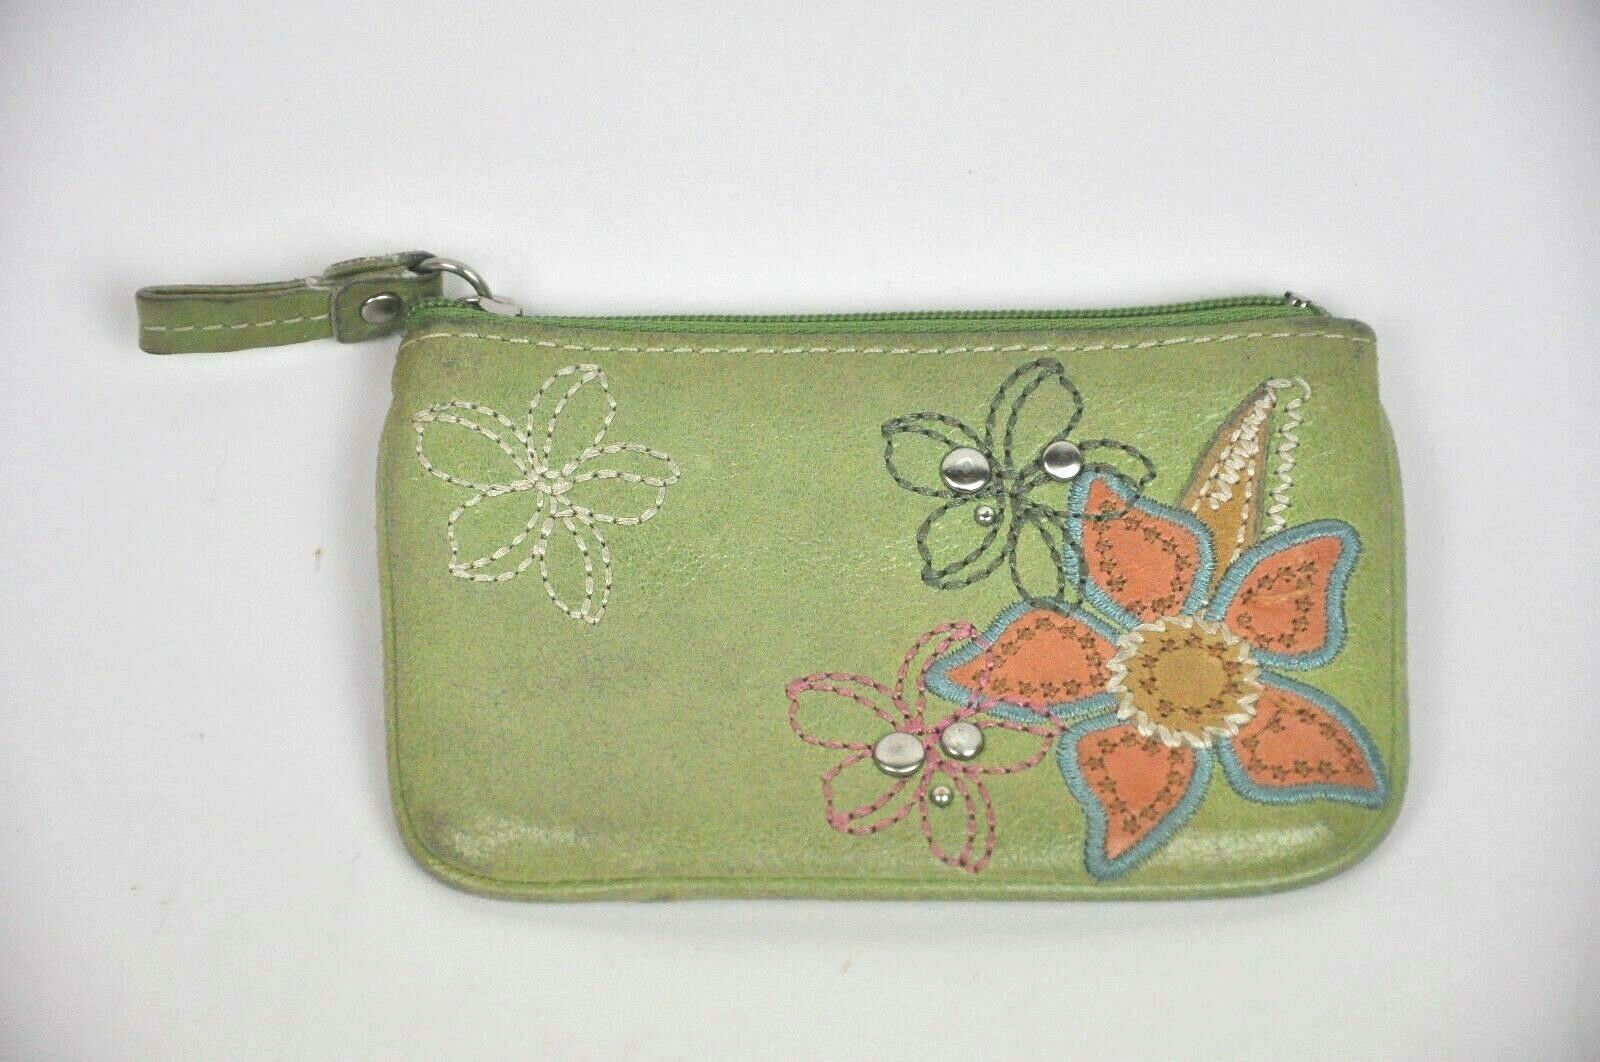 "FOSSIL Coin Purse GREEN Leather Embroidered WALLET Flowers ZIP Top SL976 3""x5"""